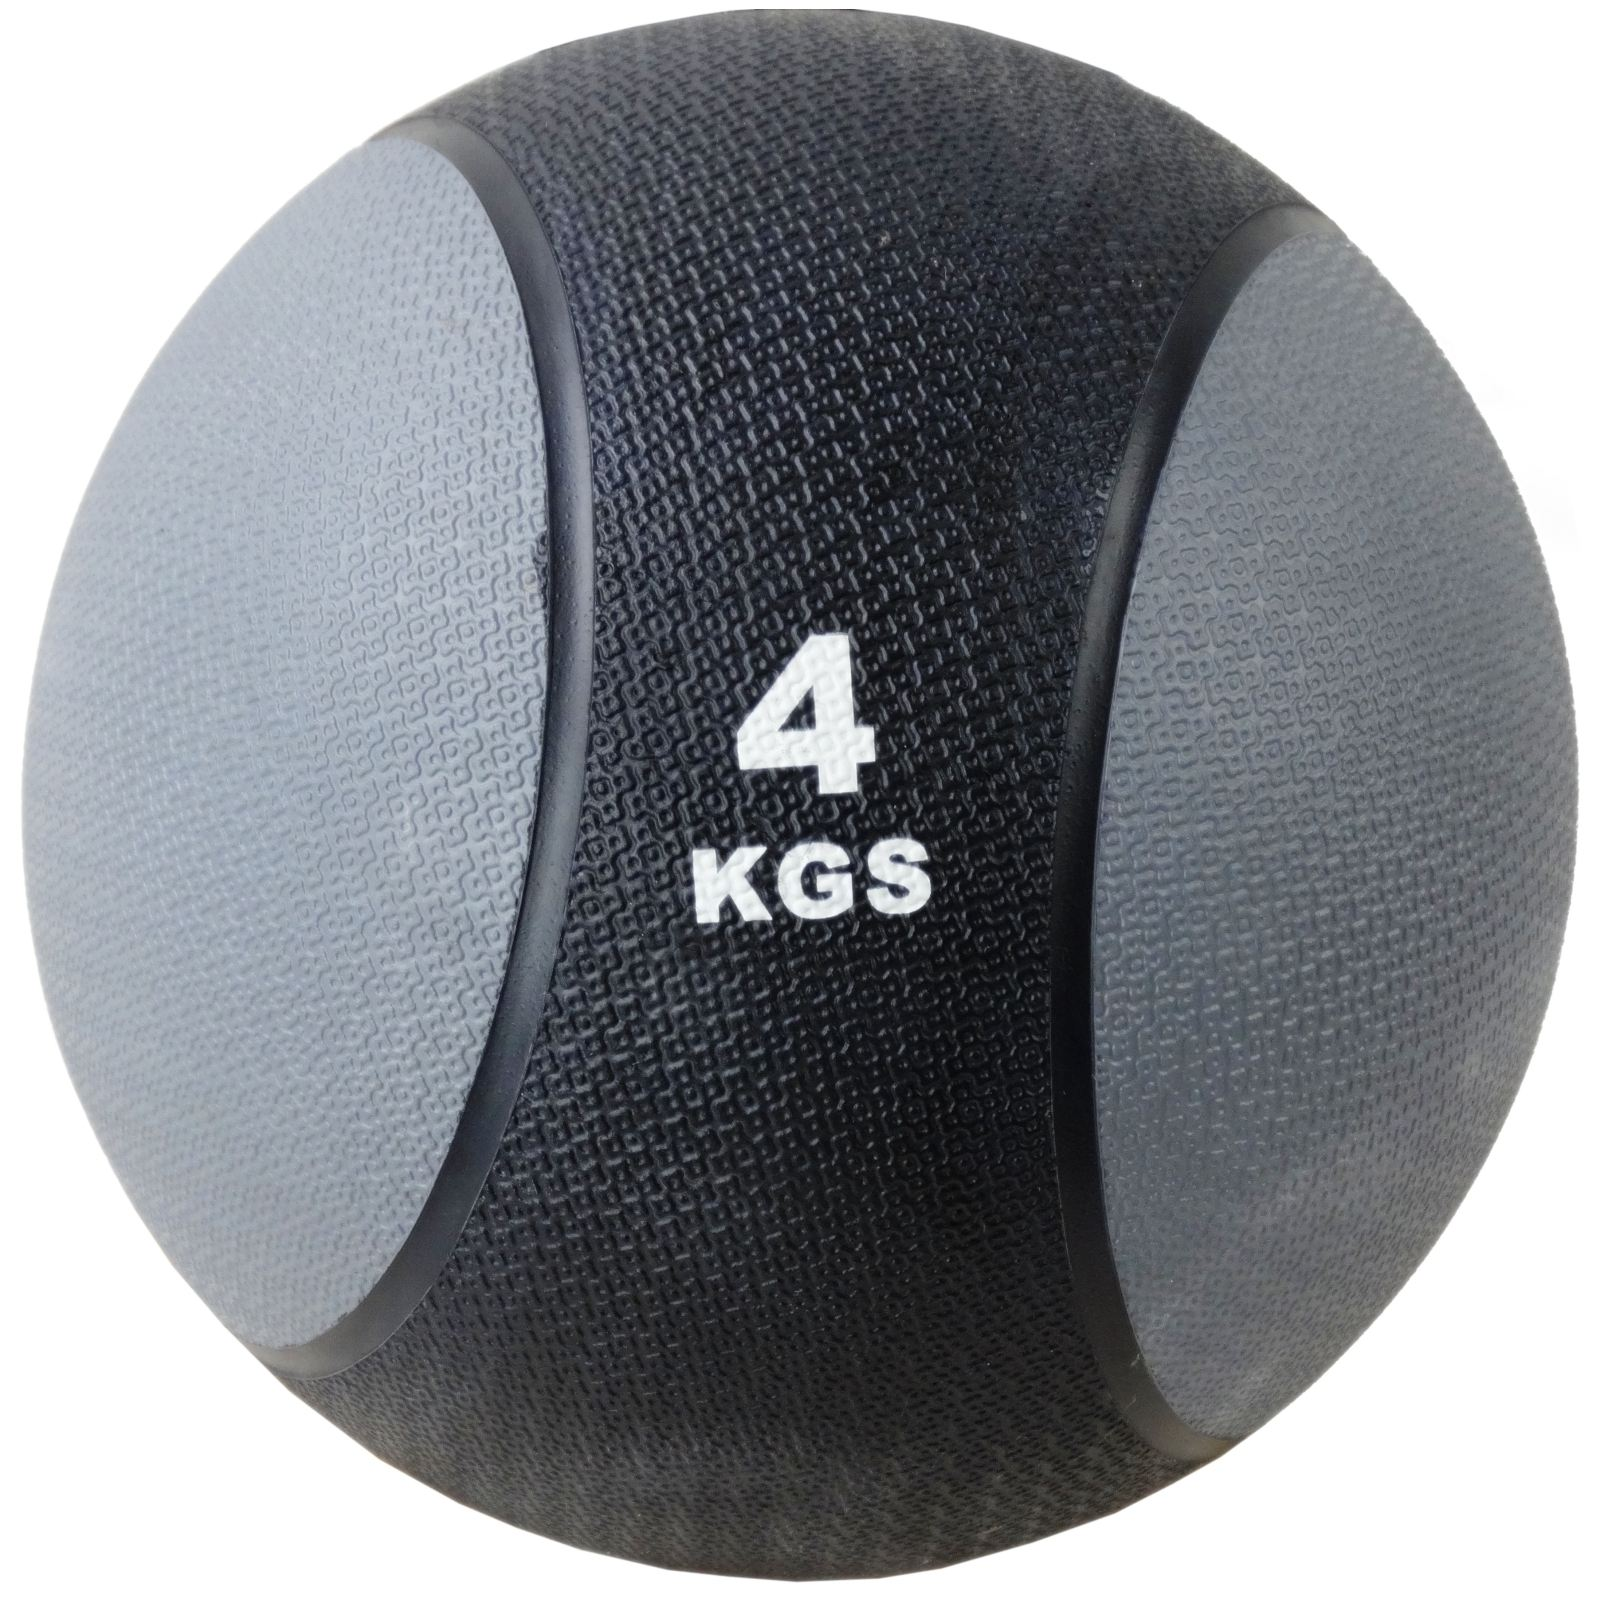 BODYRIP RUBBER MEDICINE BALL BALLS WEIGHTS EXERCISE FITNESS MMA BOXING GYM FIT